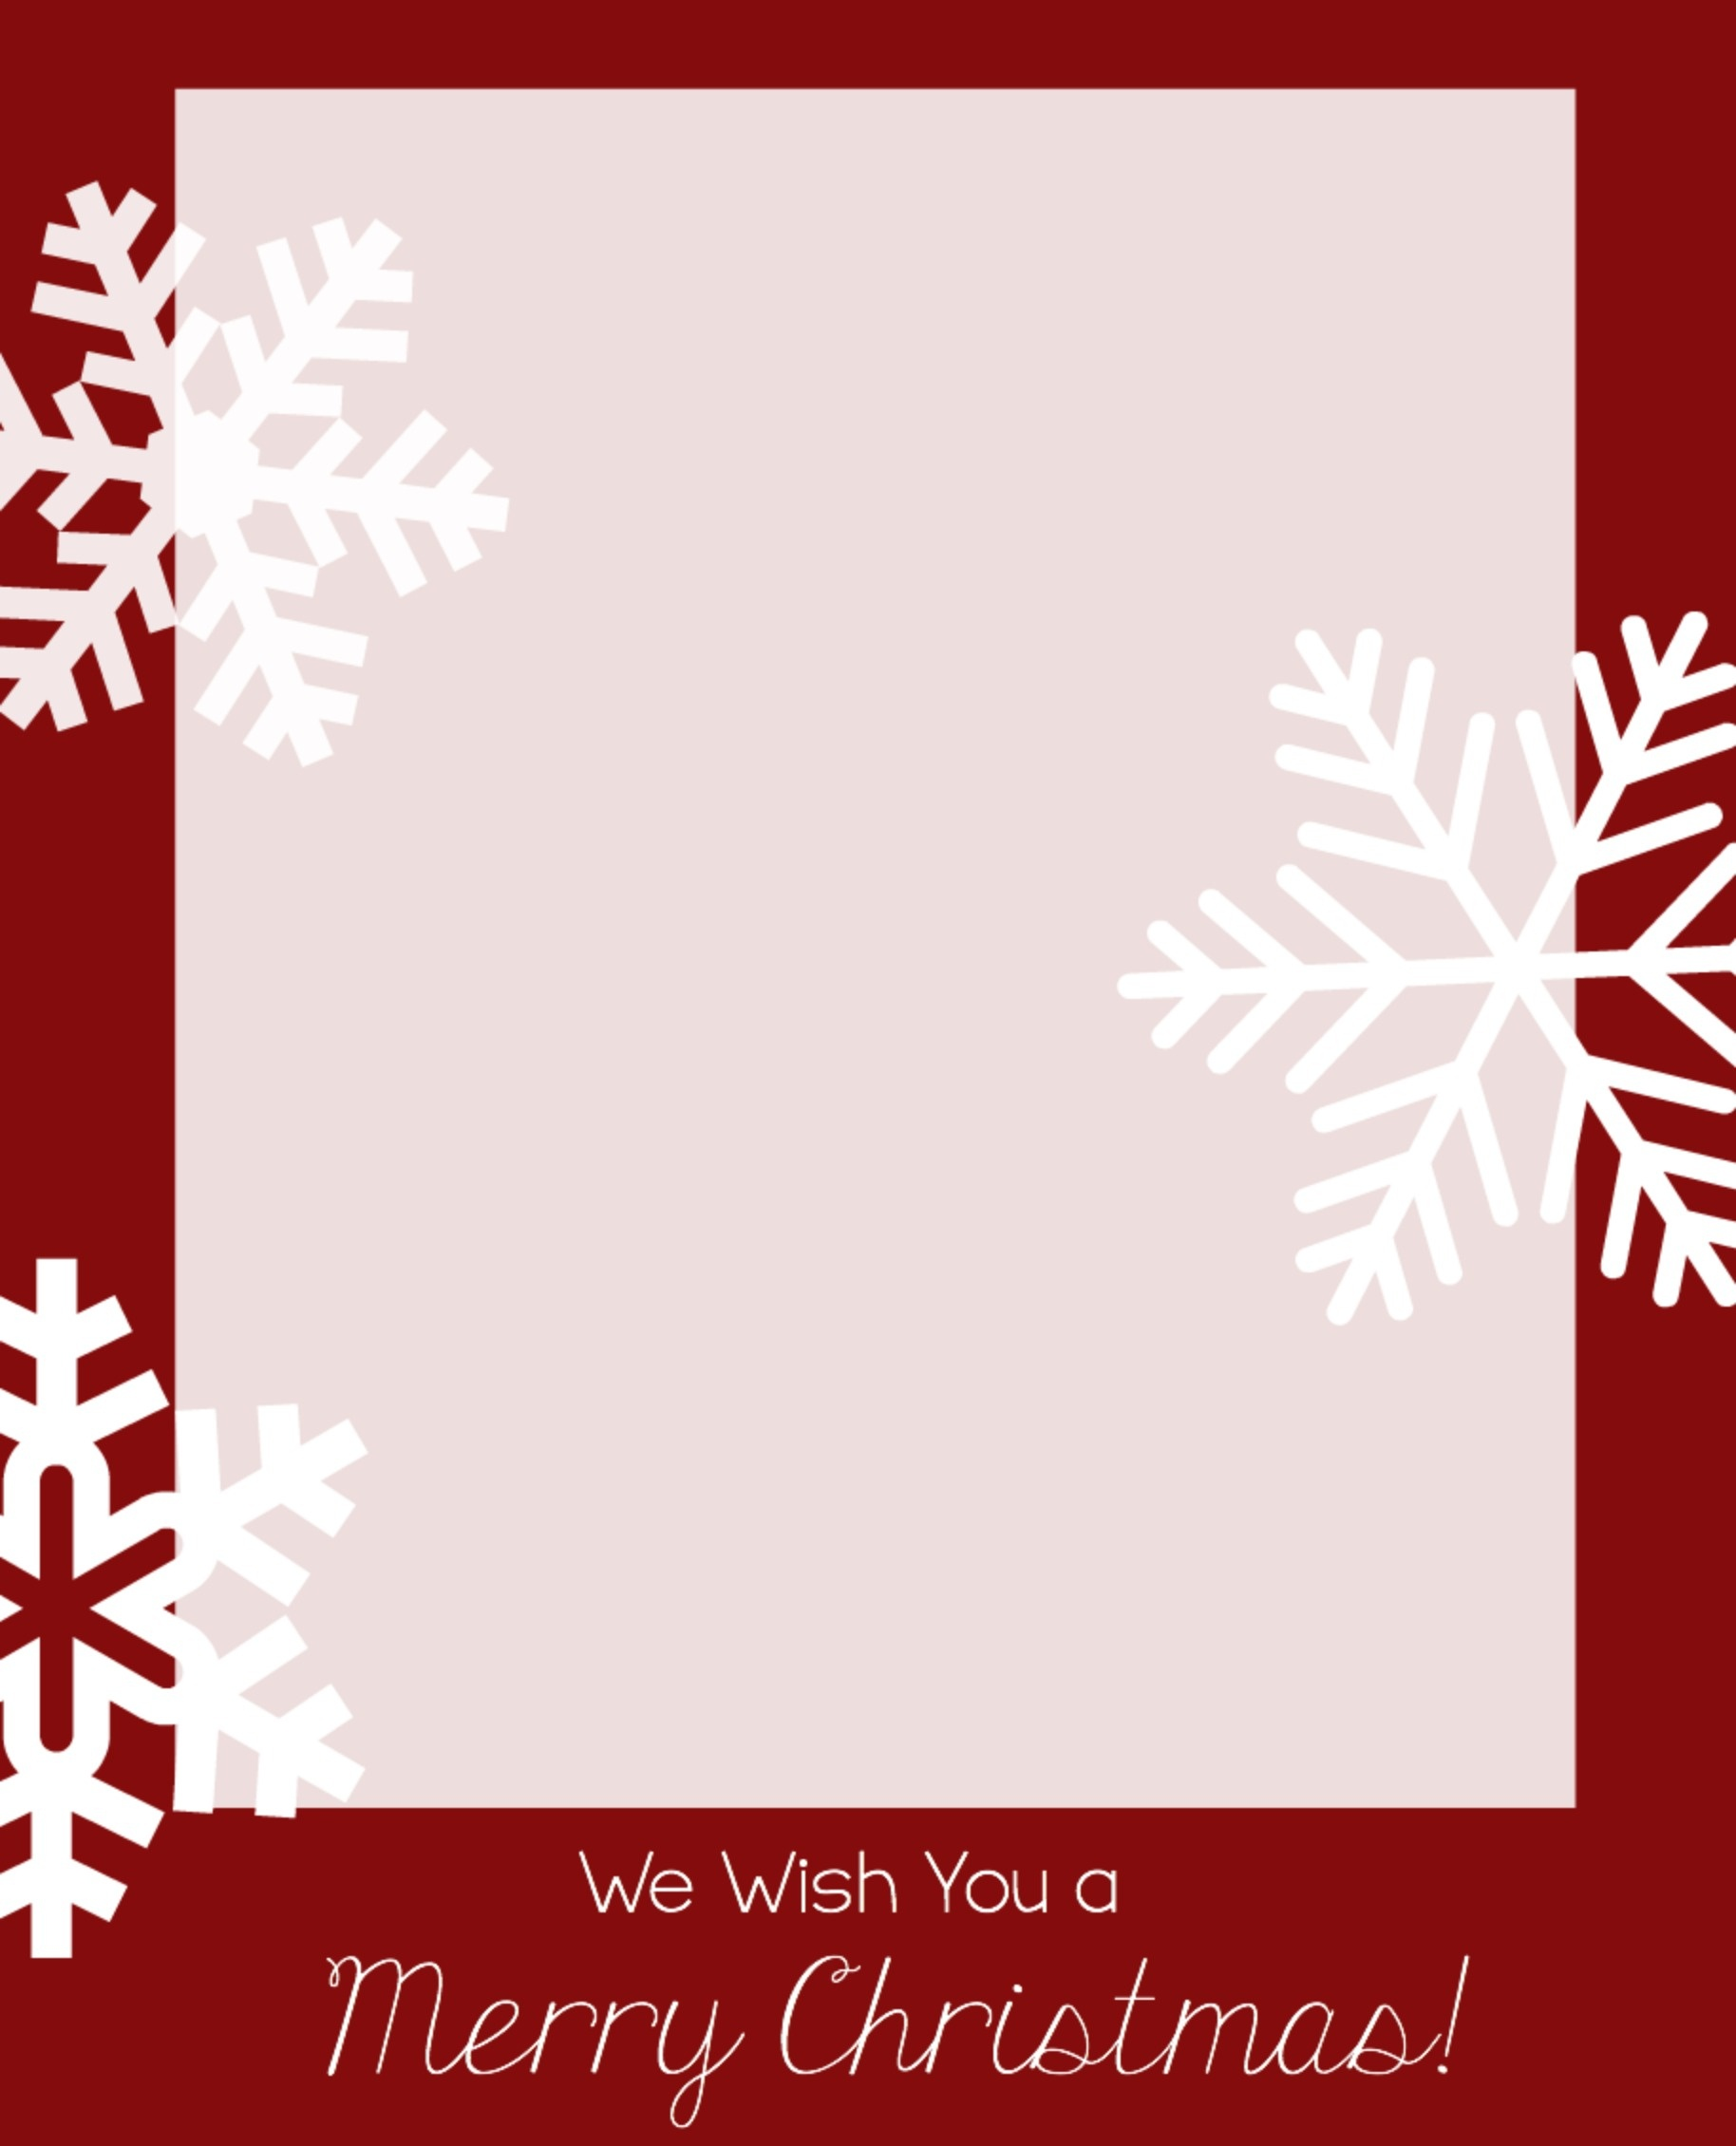 Free Christmas Card Templates - Crazy Little Projects - Free Printable Photo Christmas Cards